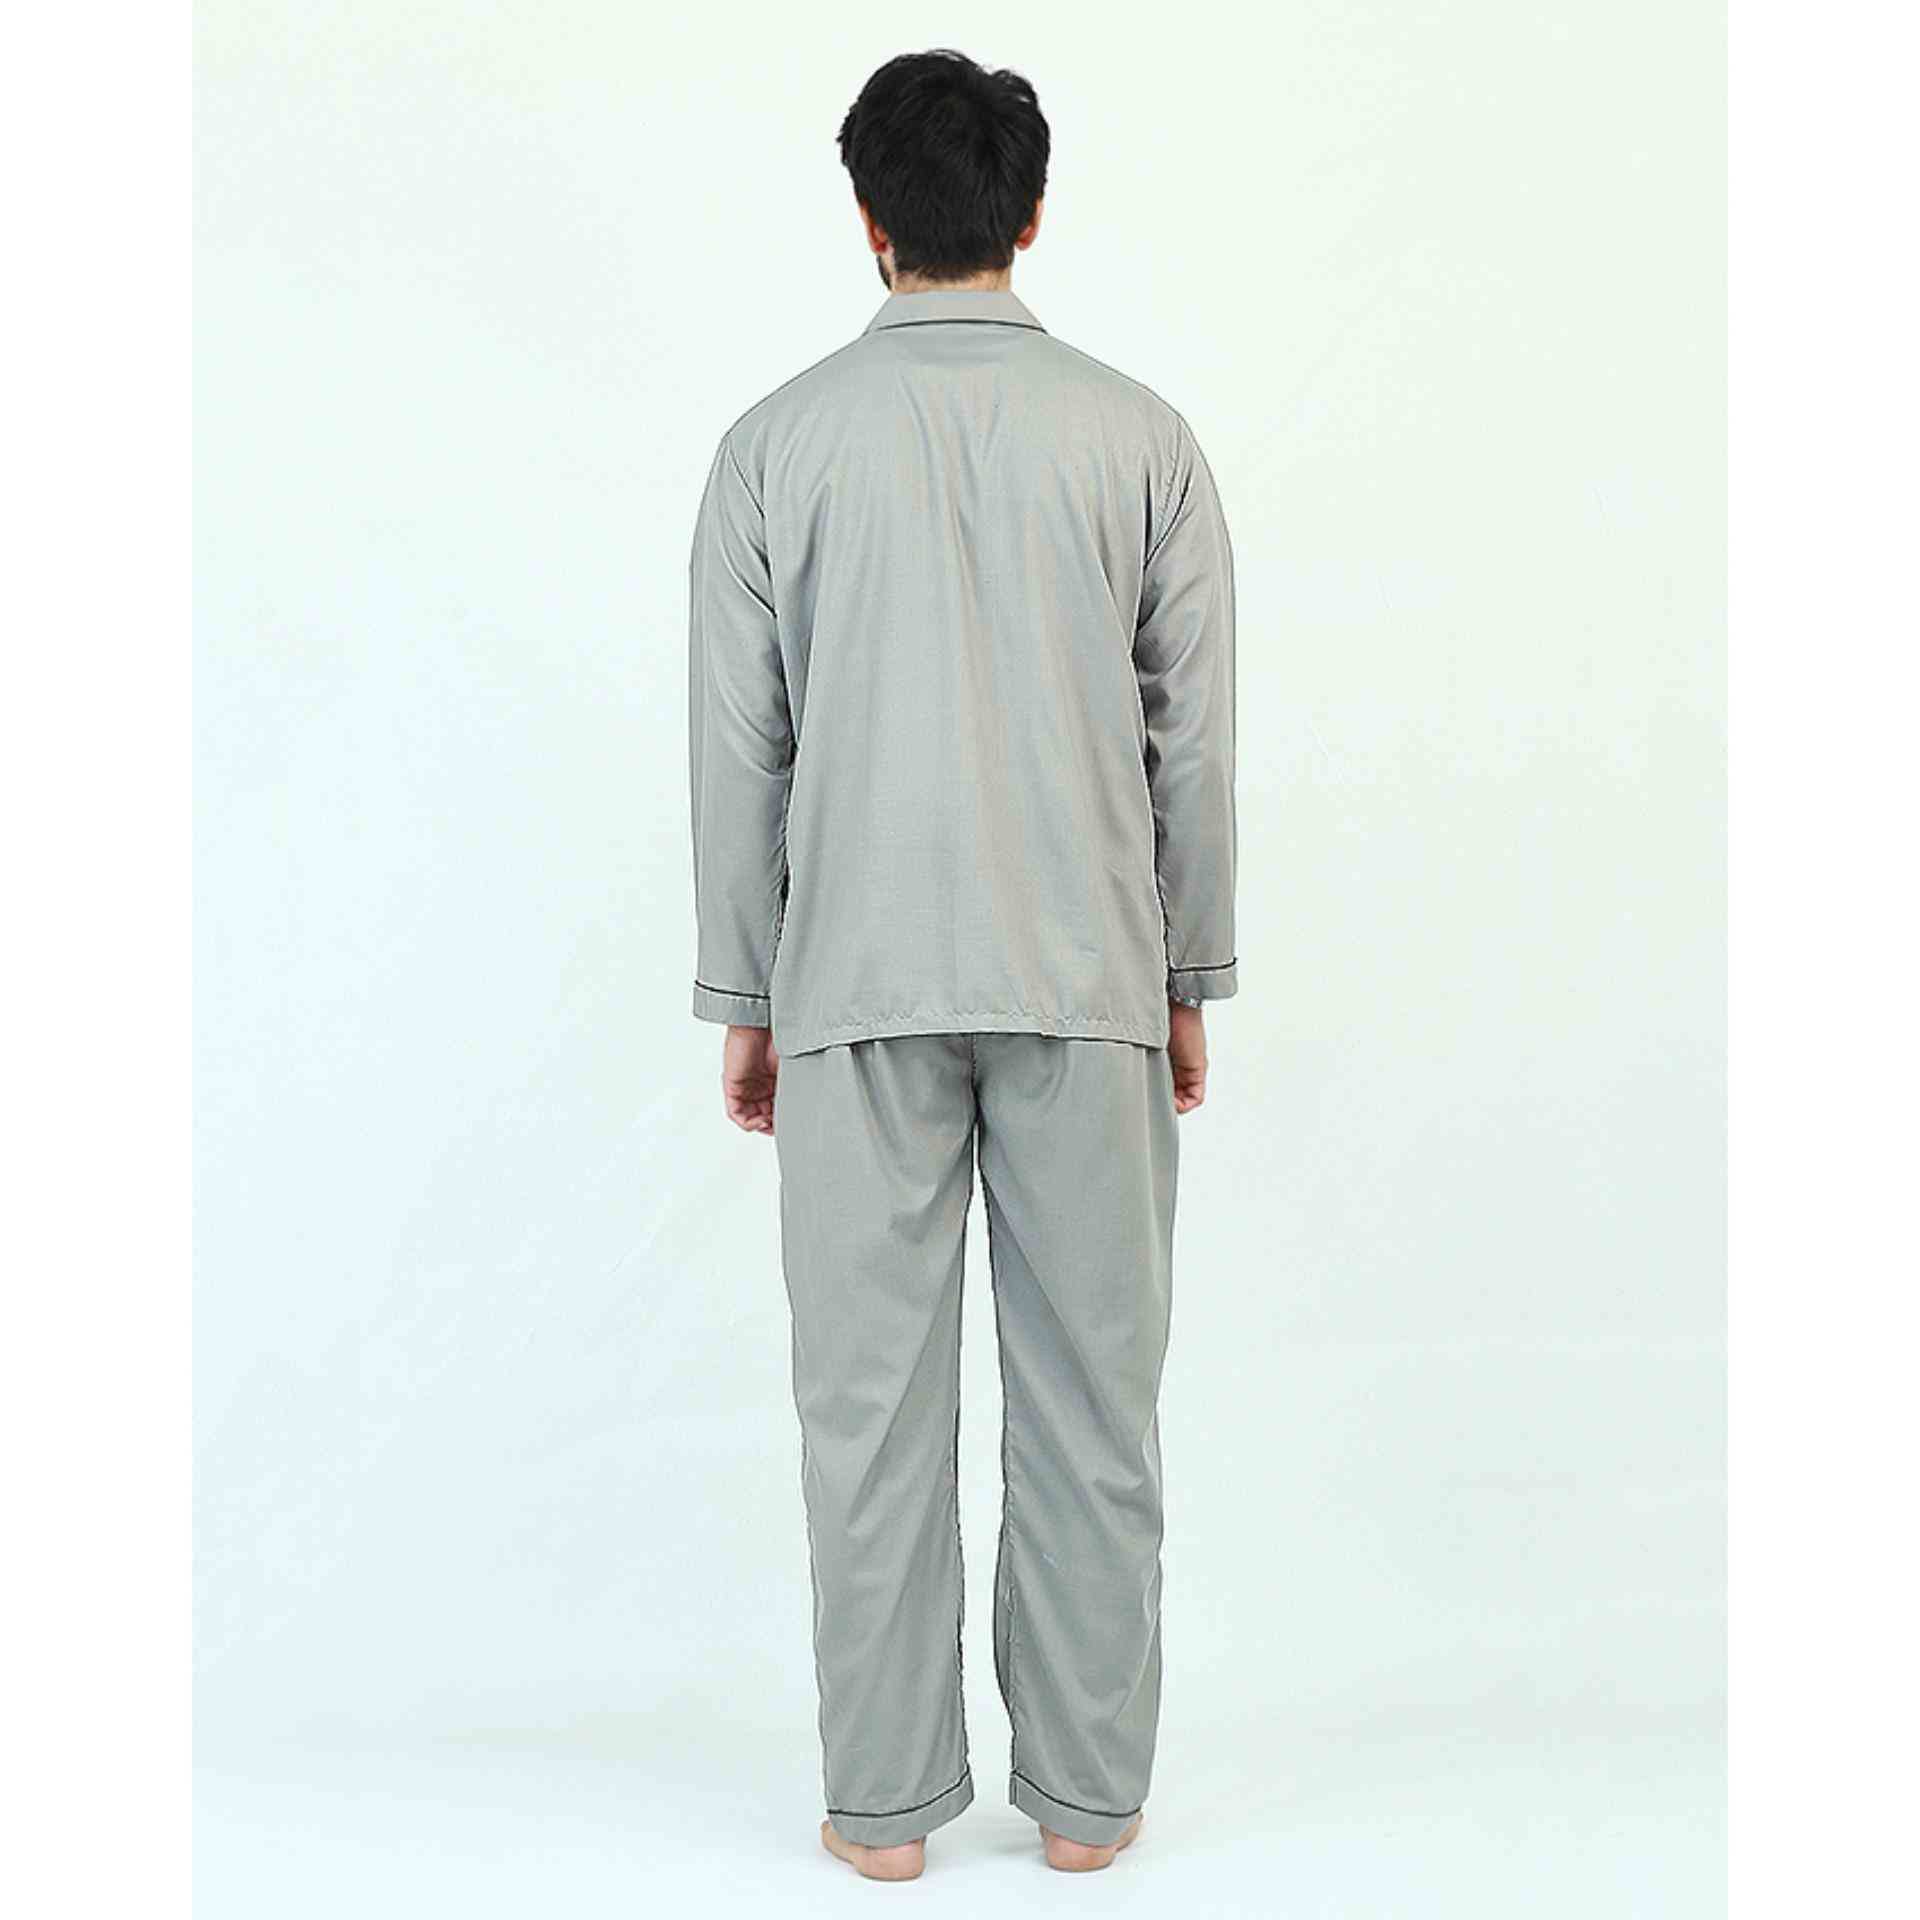 Pack of 2 Cotton Polyester Night Suit (Pajama + Shirt) for Men - Light Green